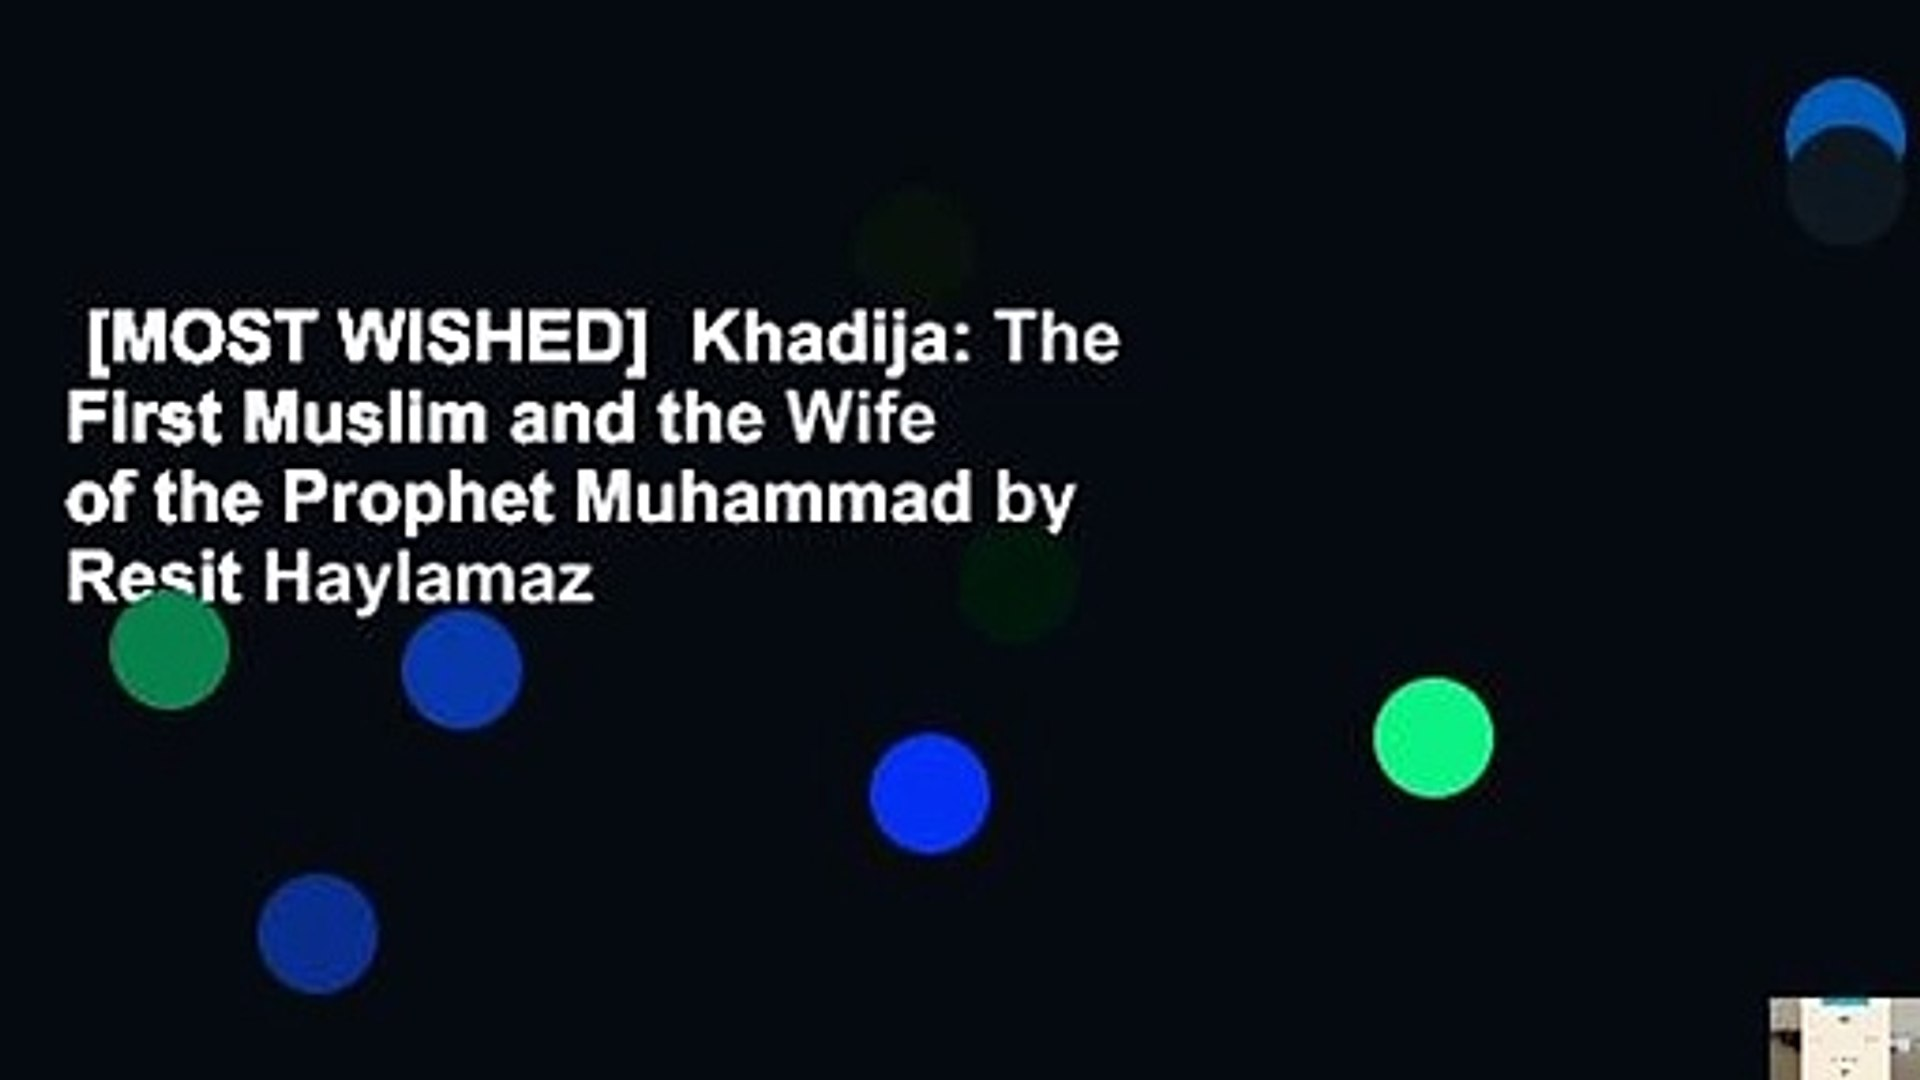 [MOST WISHED] Khadija: The First Muslim and the Wife of the Prophet  Muhammad by Resit Haylamaz